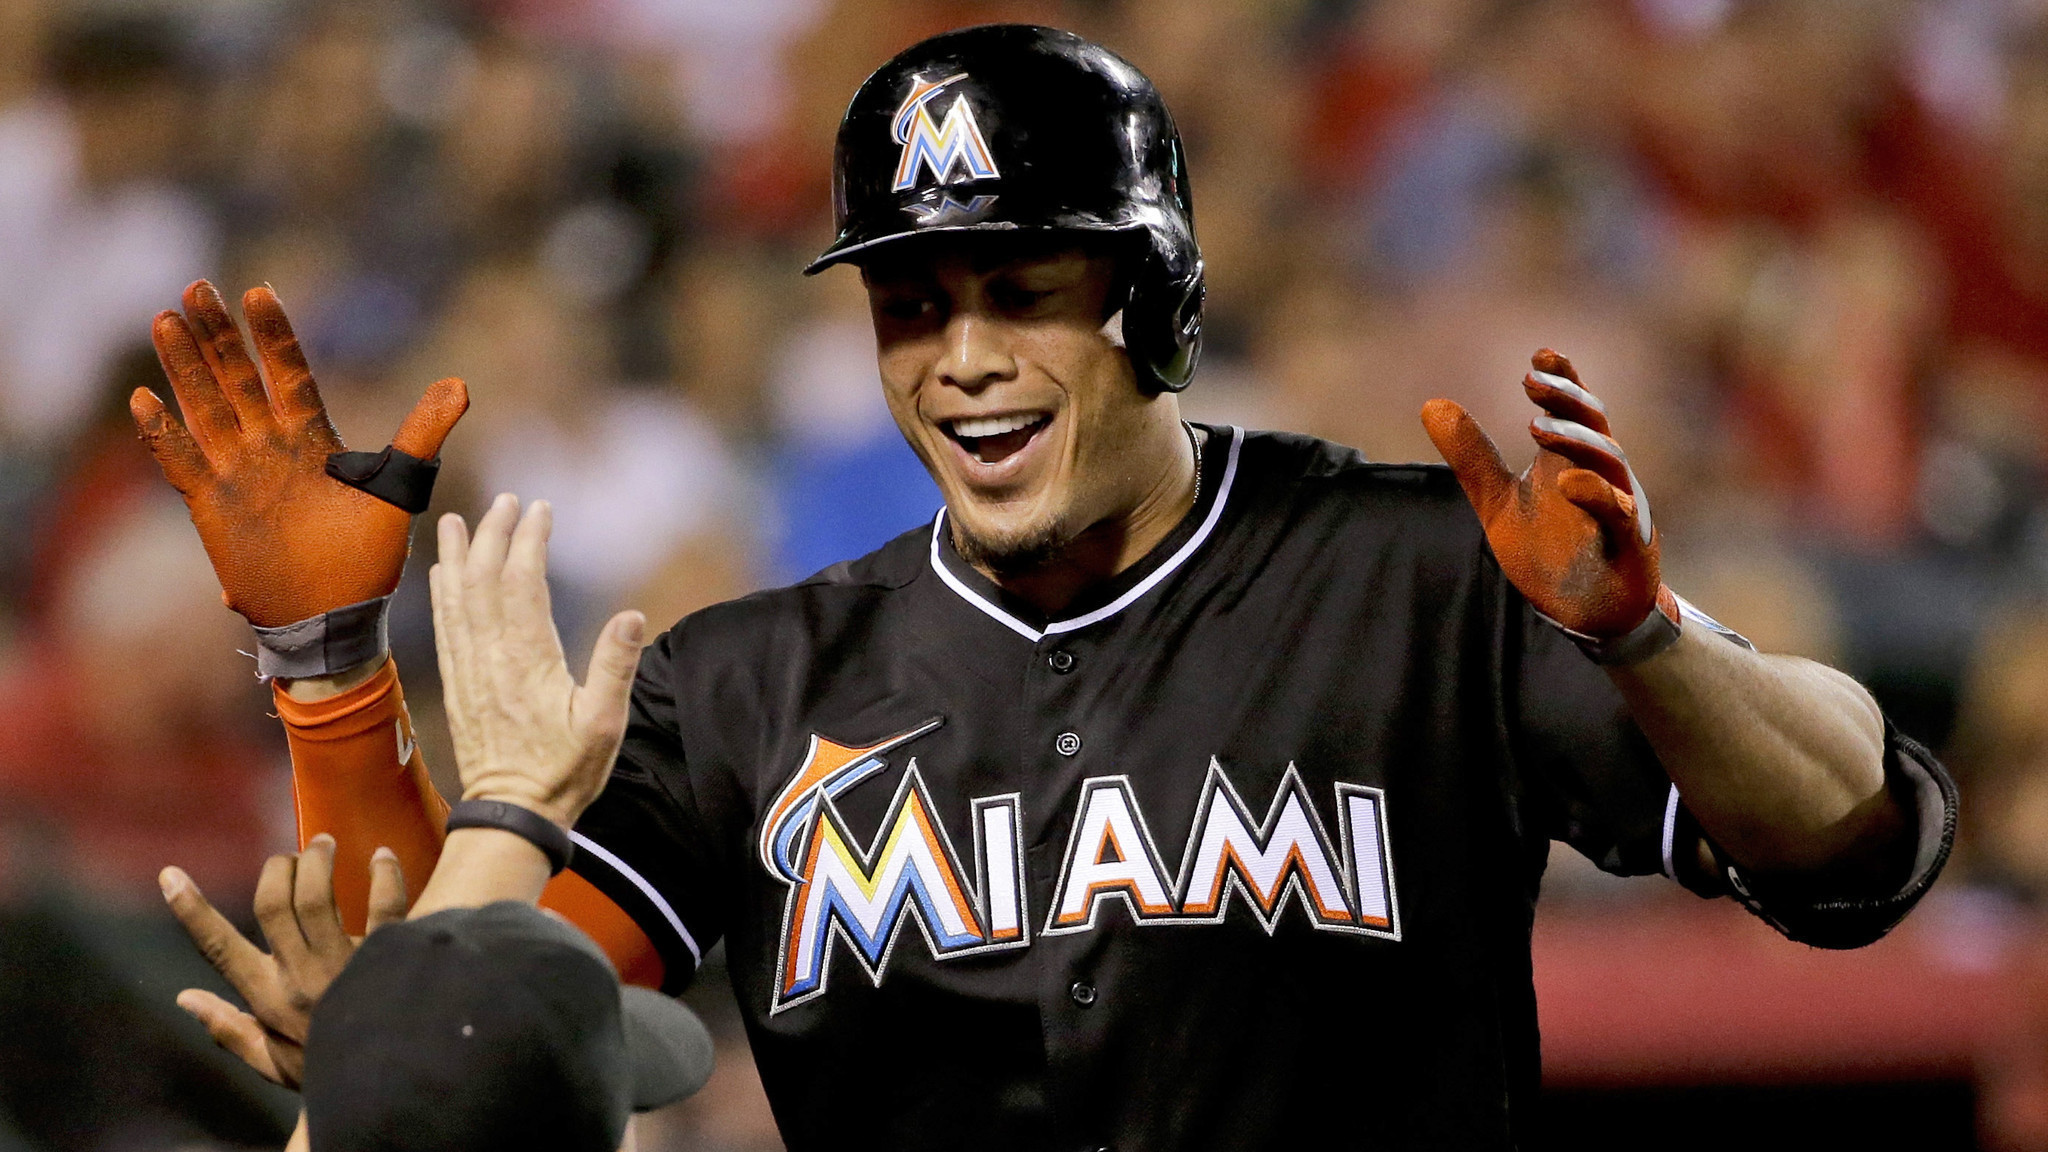 la-sp-giancarlo-stanton-contract-marlins